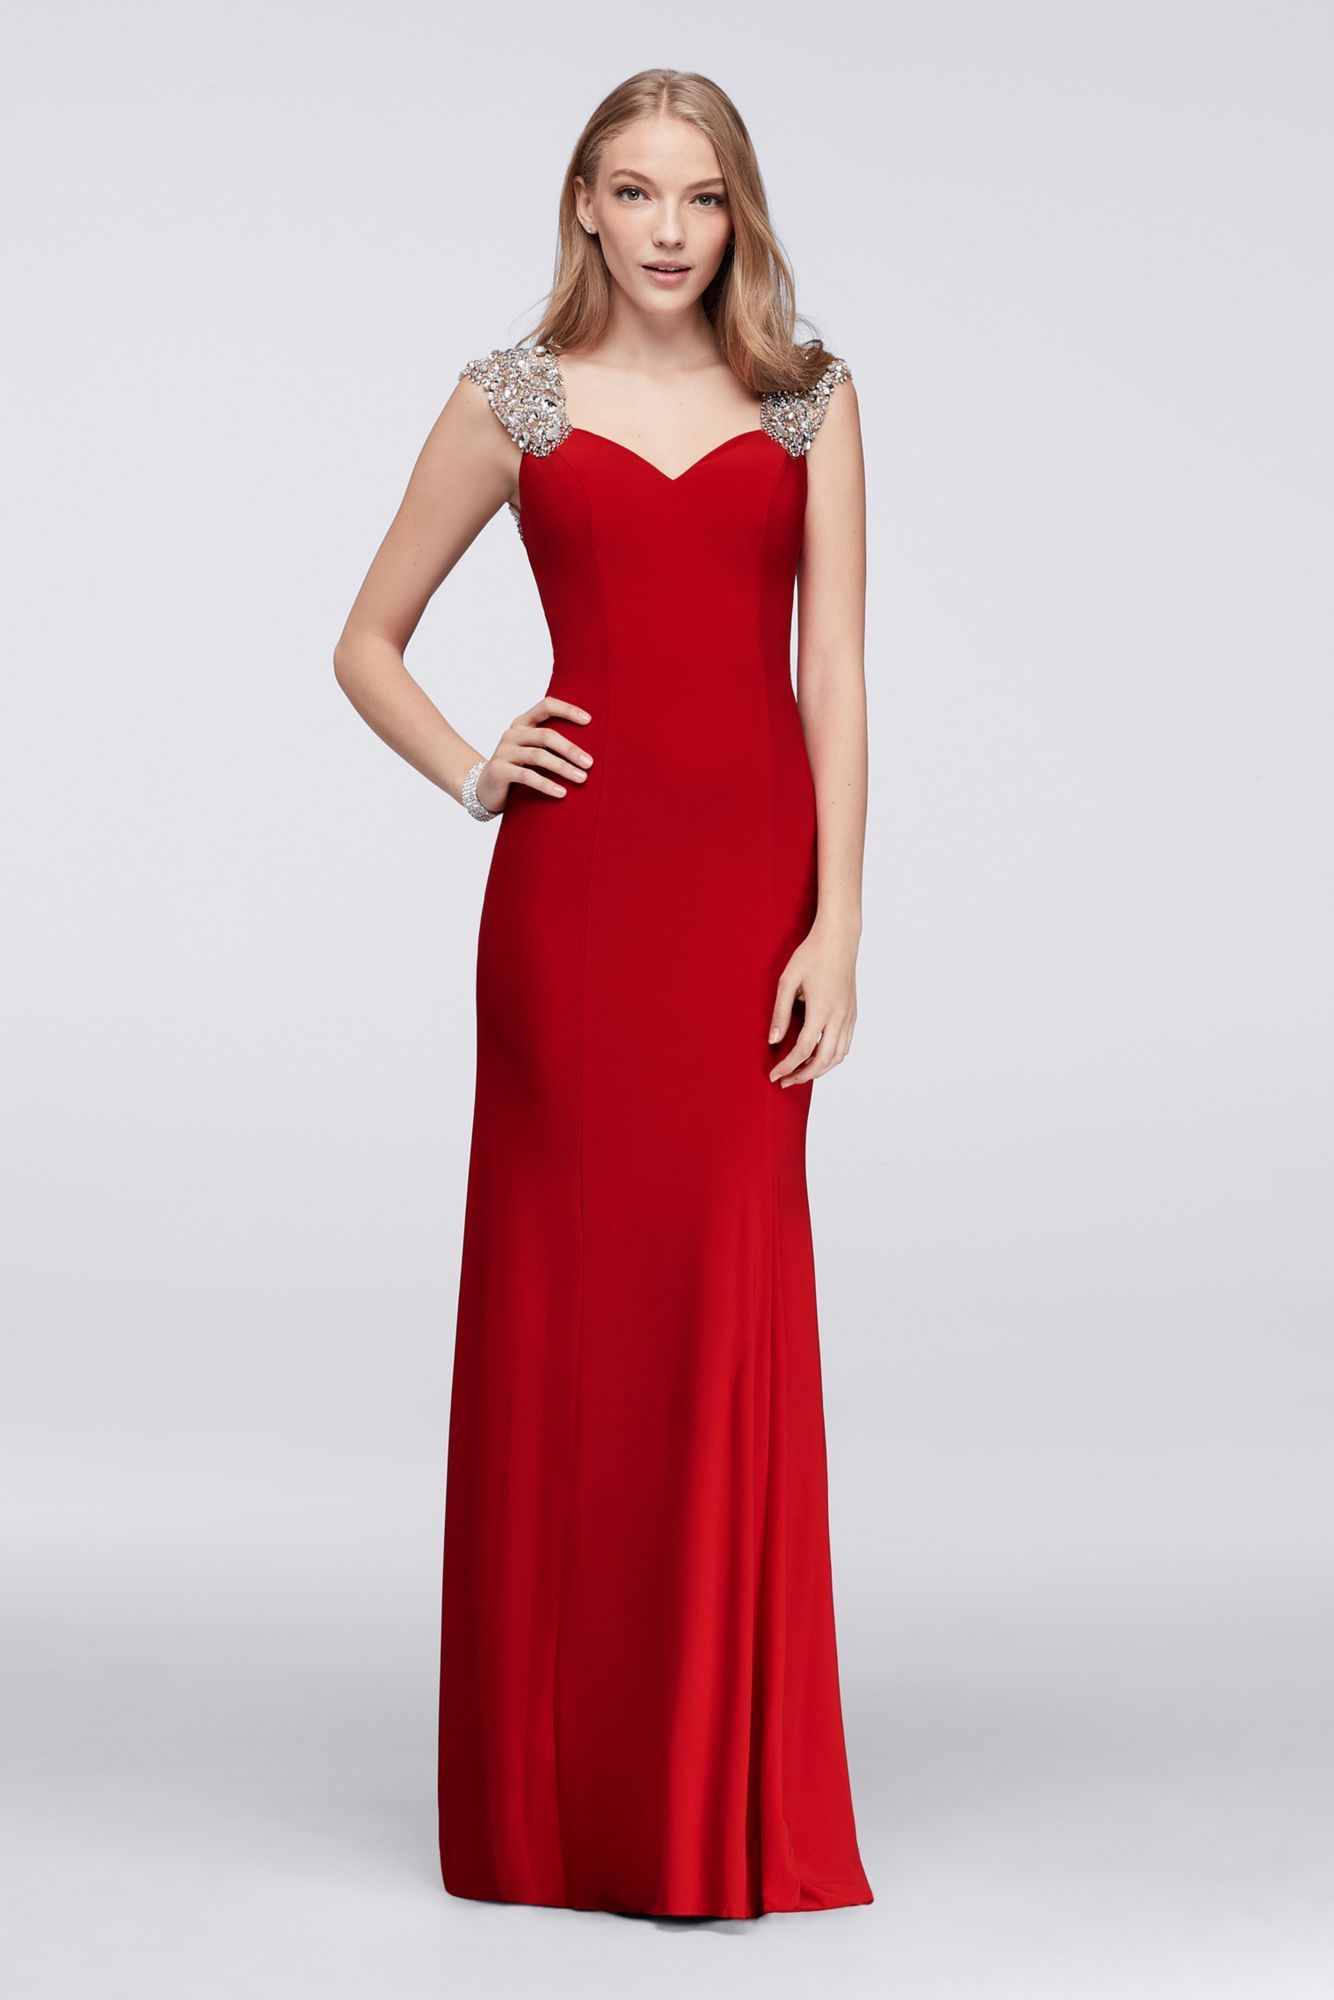 Modern beaded cap sleeves long column jersey prom gowns style